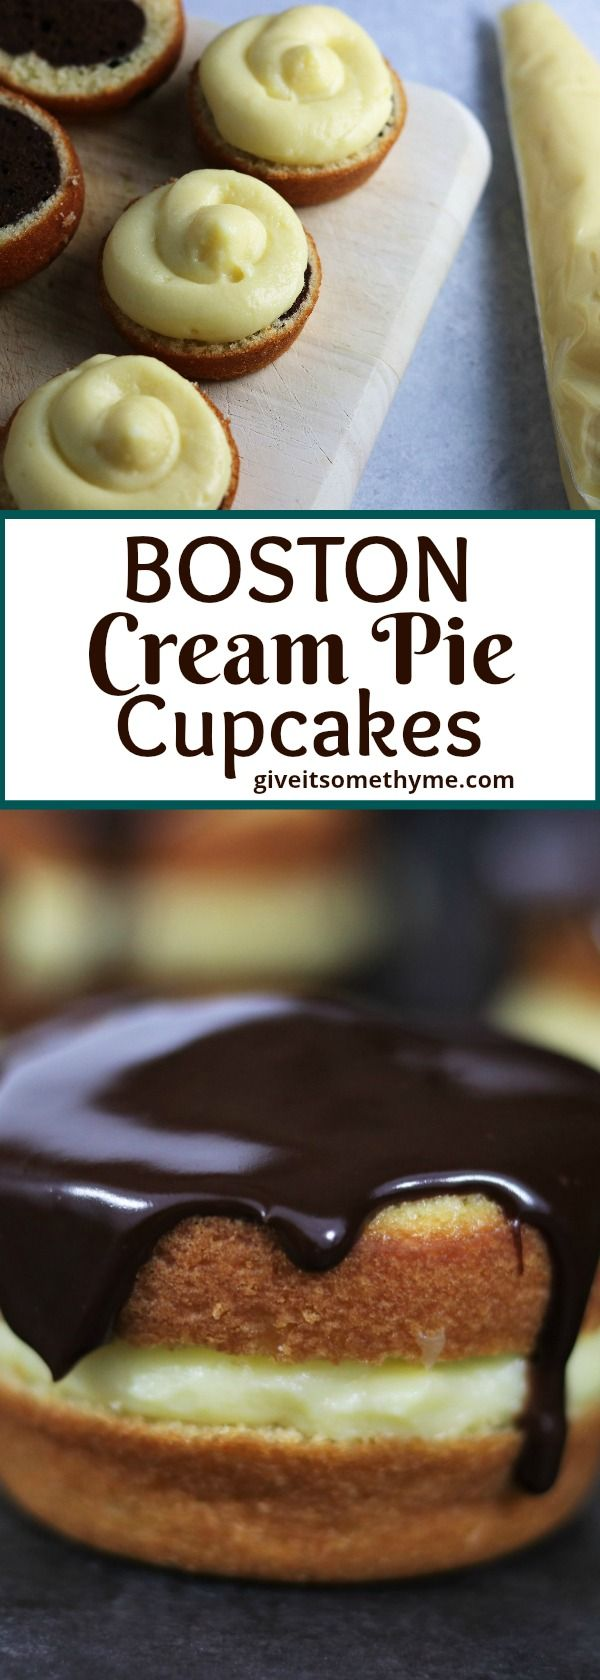 Boston Cream Pie Cupcakes | Give it Some Thyme